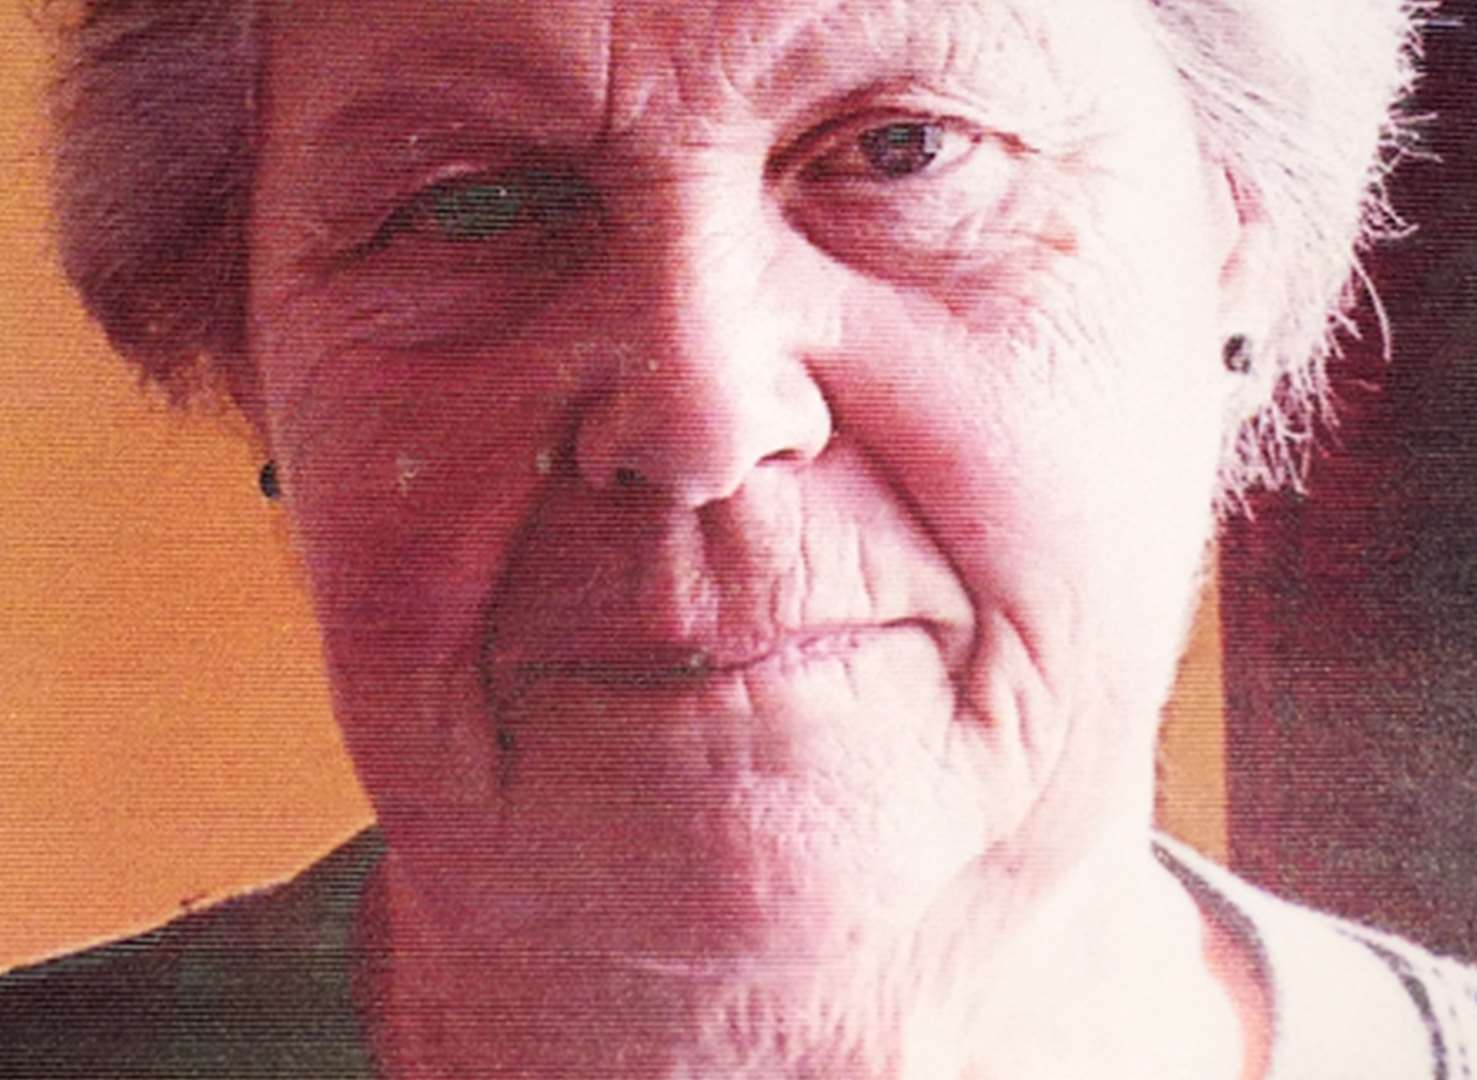 Police find missing 75-year-old